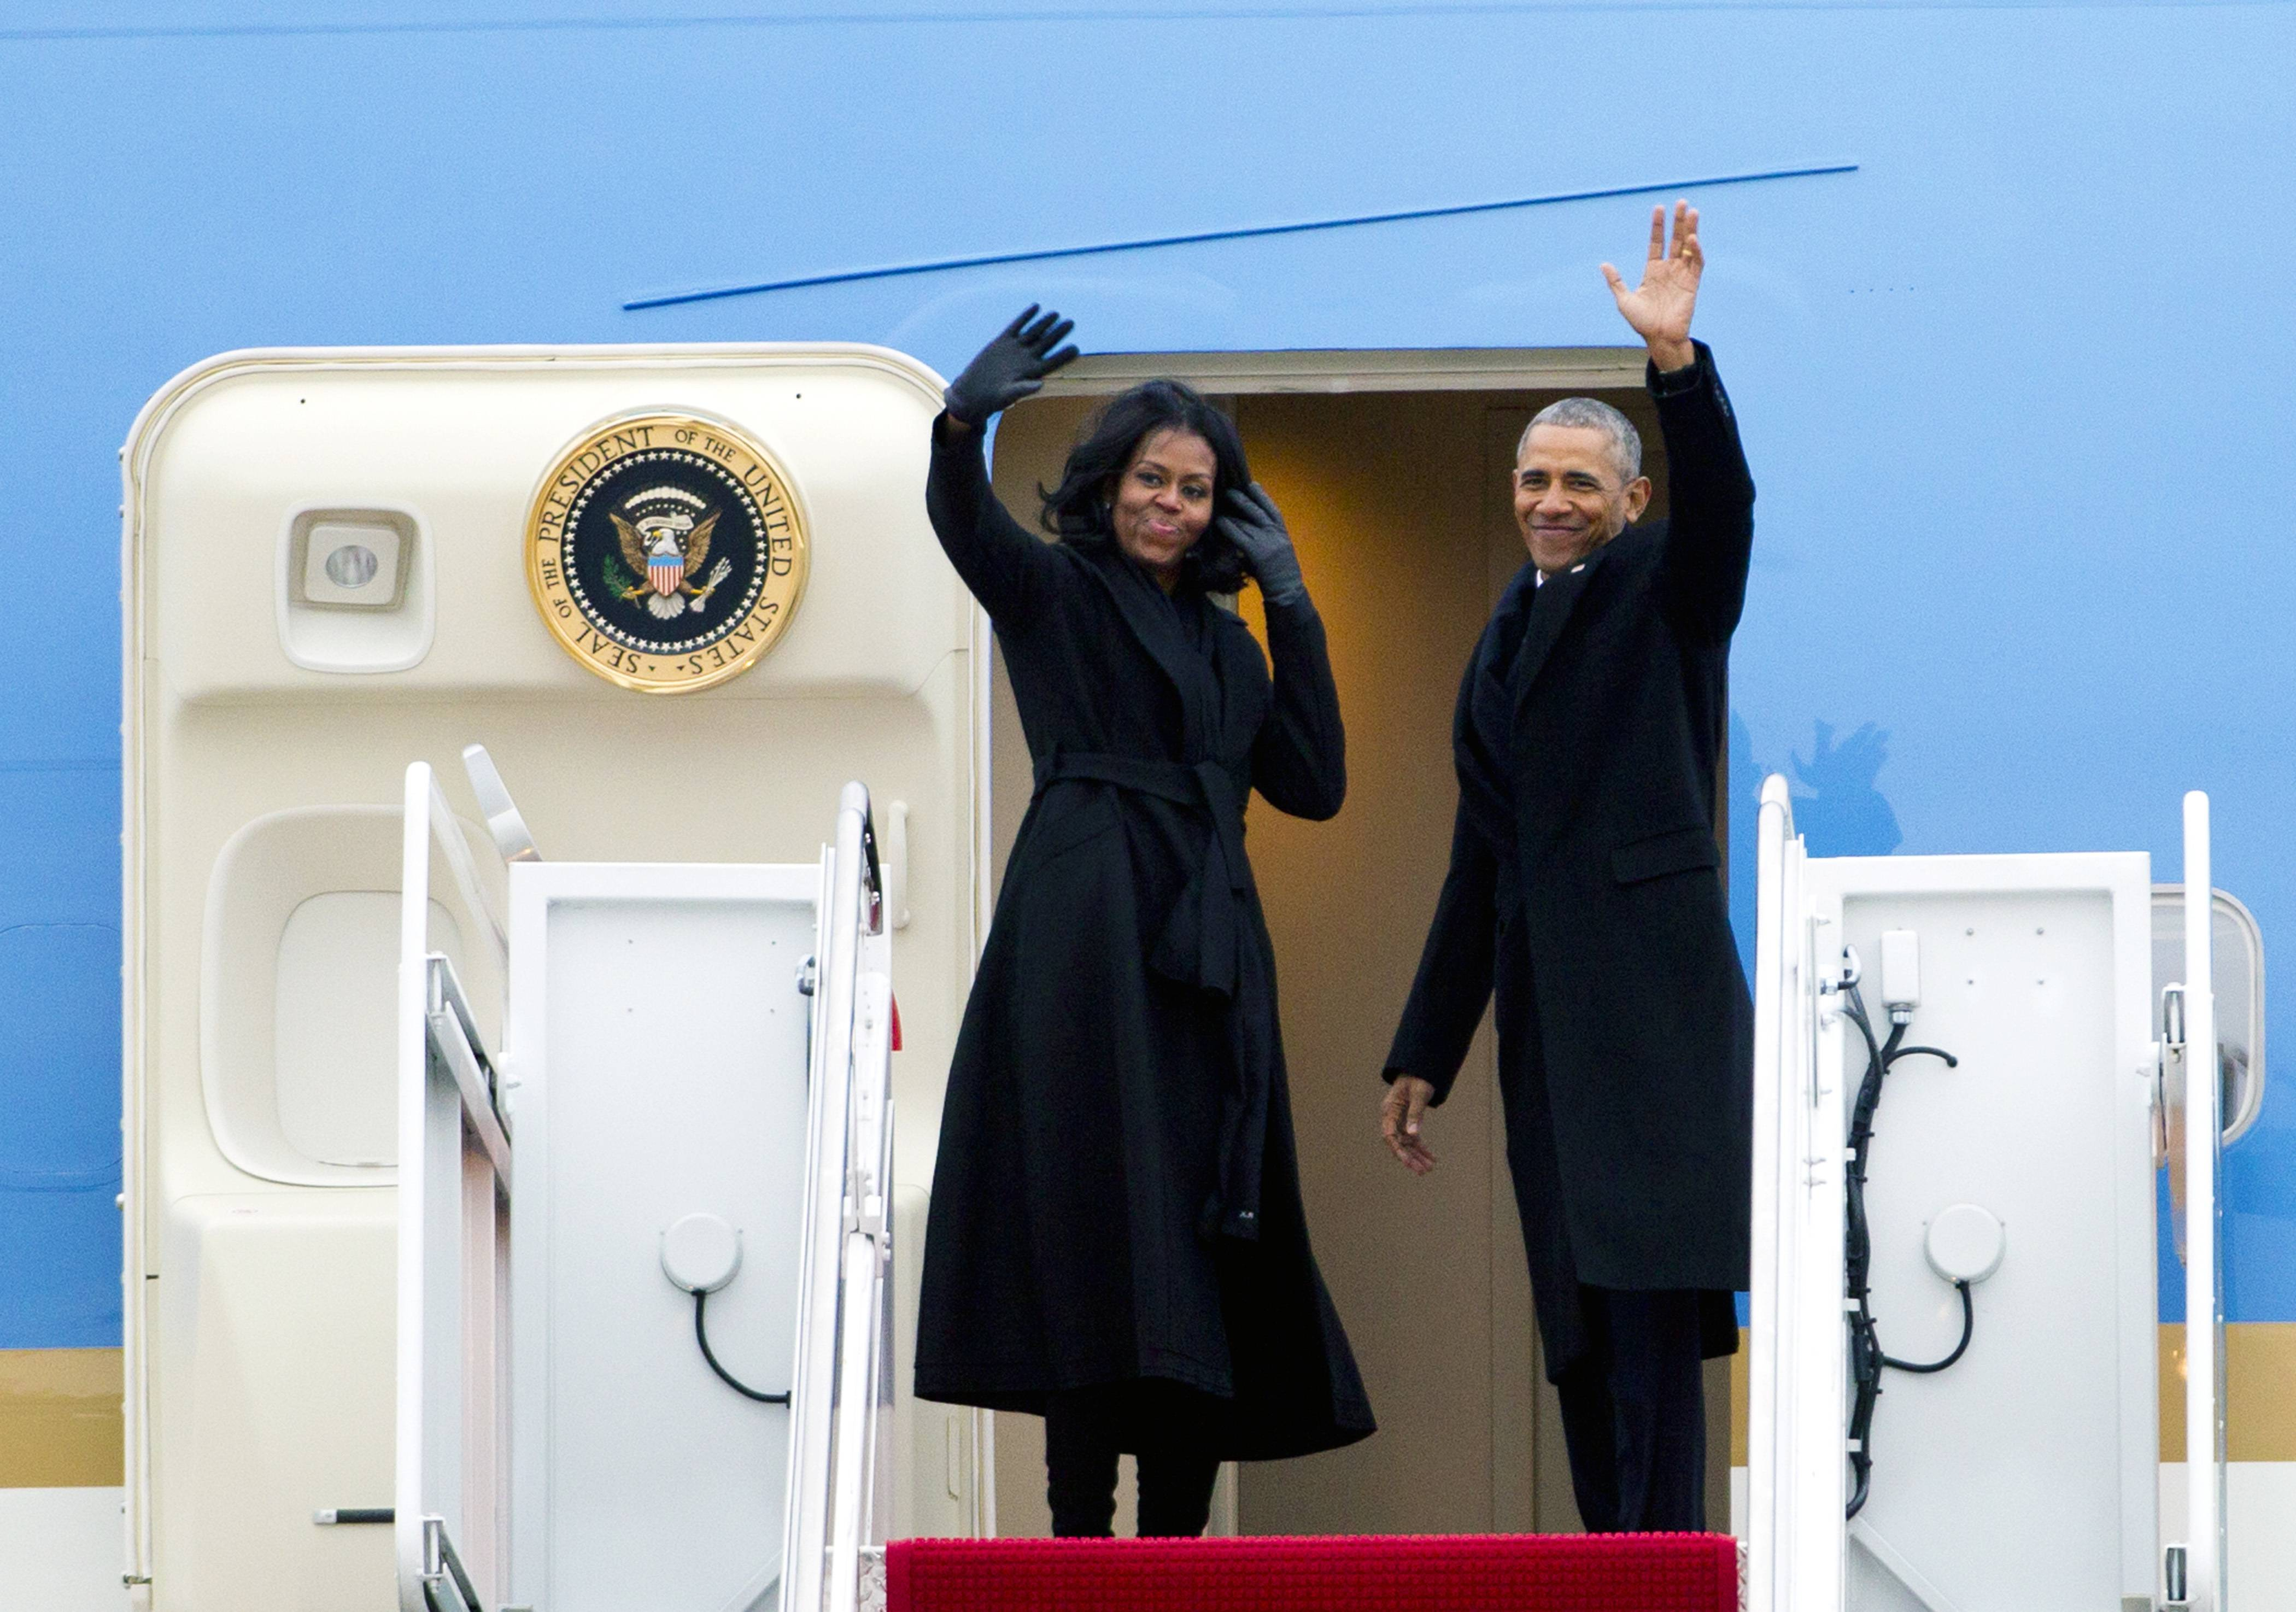 President Barack Obama and first lady Michelle Obama wave from Air Force One at Andrews Air Force Base, Maryland, as they leave for Chicago for his presidential farewell address.